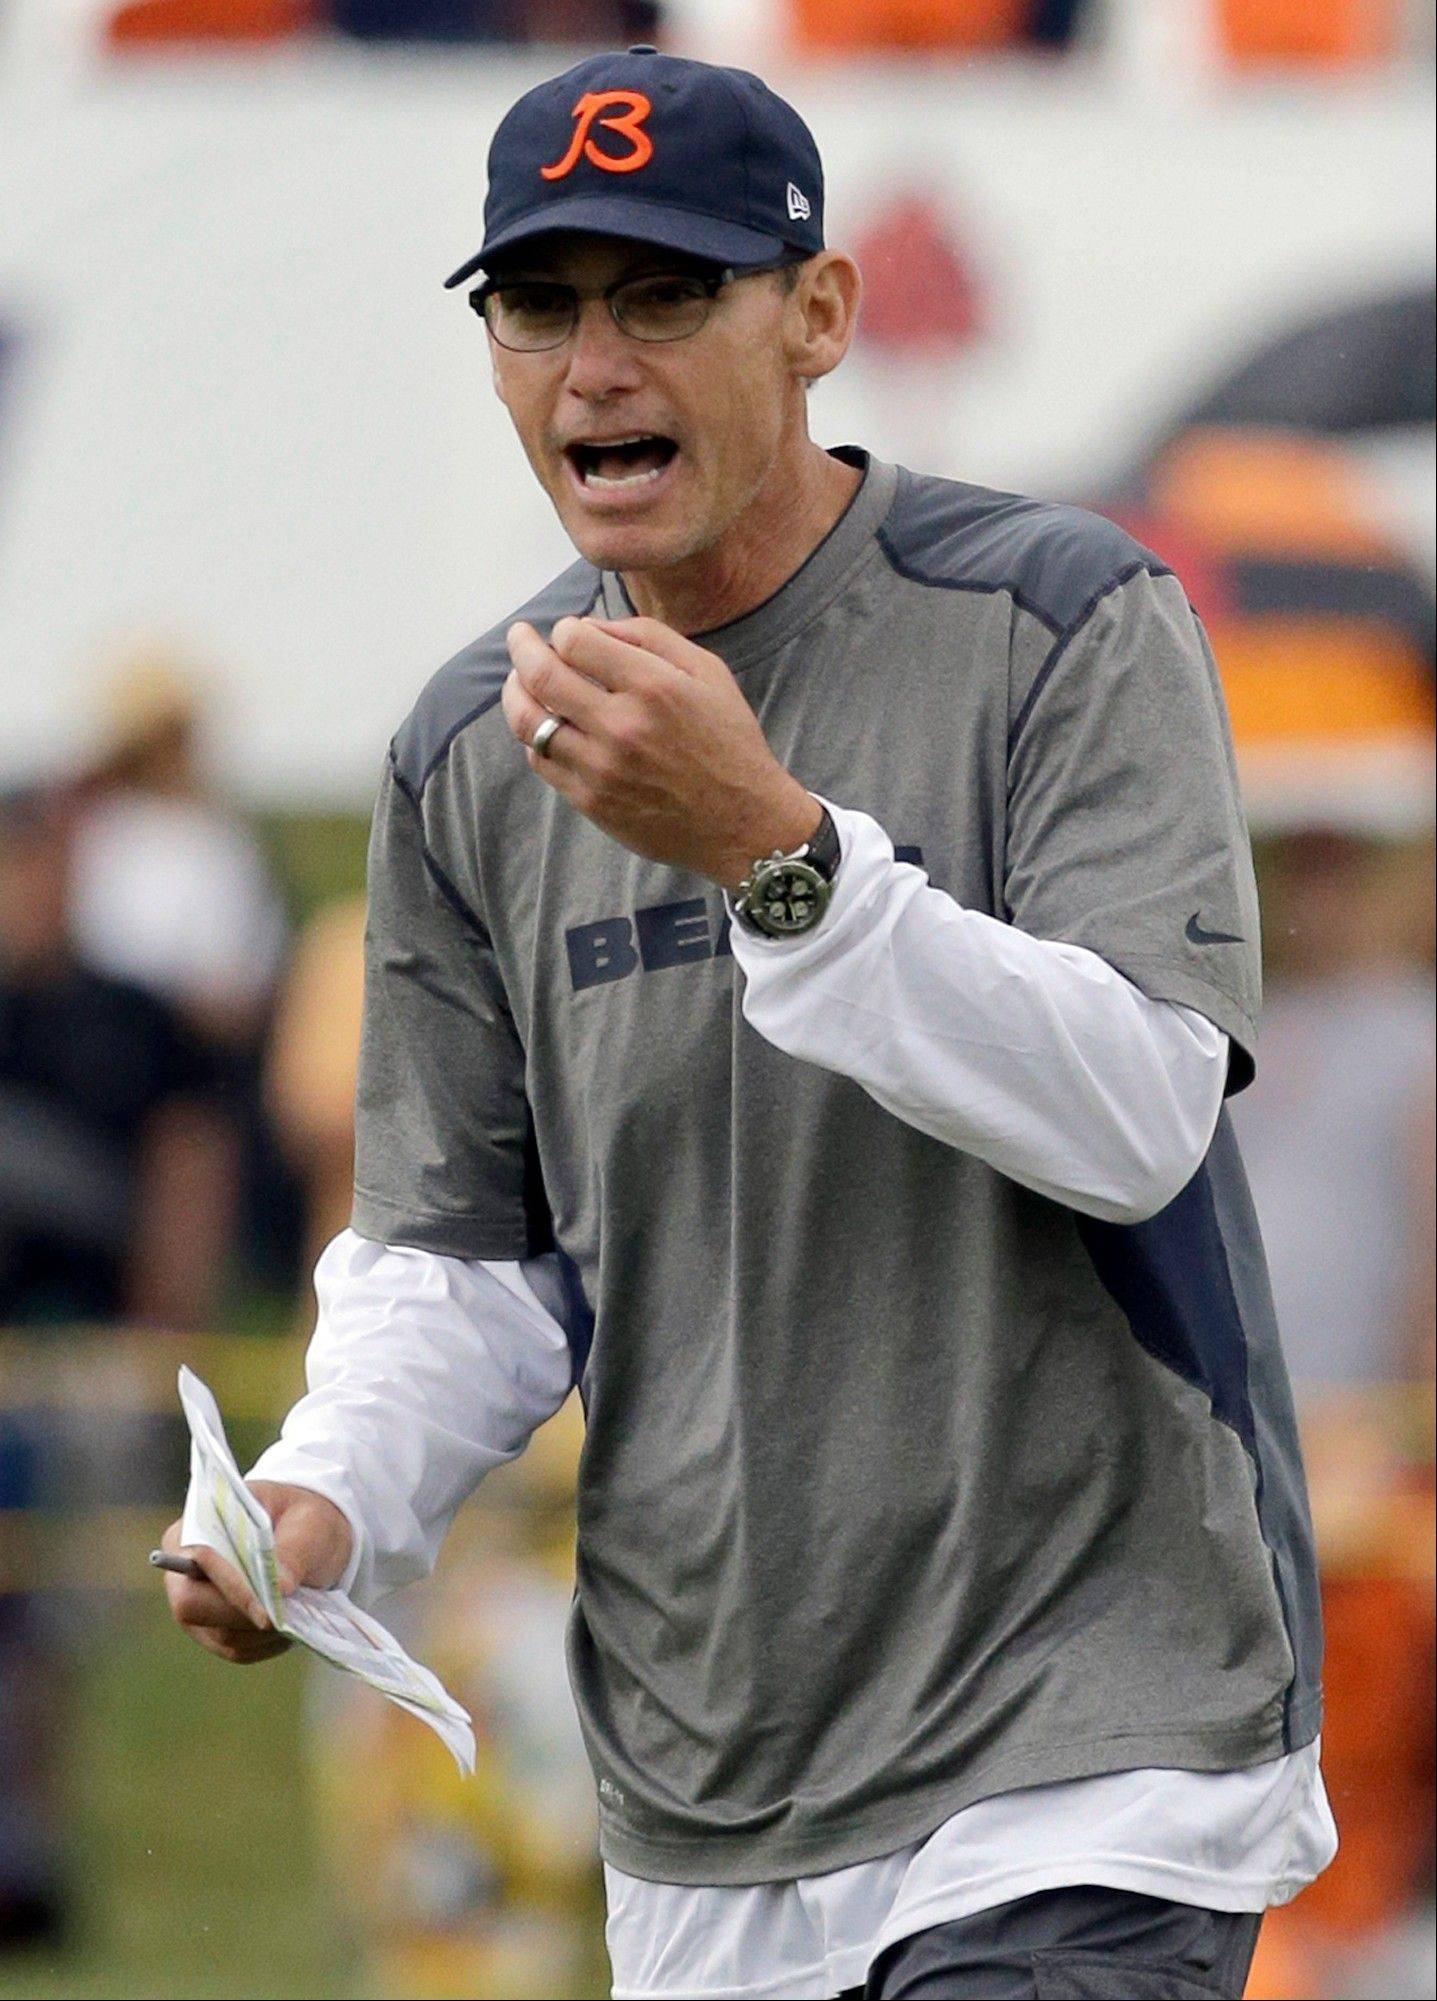 Bears coach Marc Trestman said that it's important to explain to today's players the rationale behind coaching decisions.